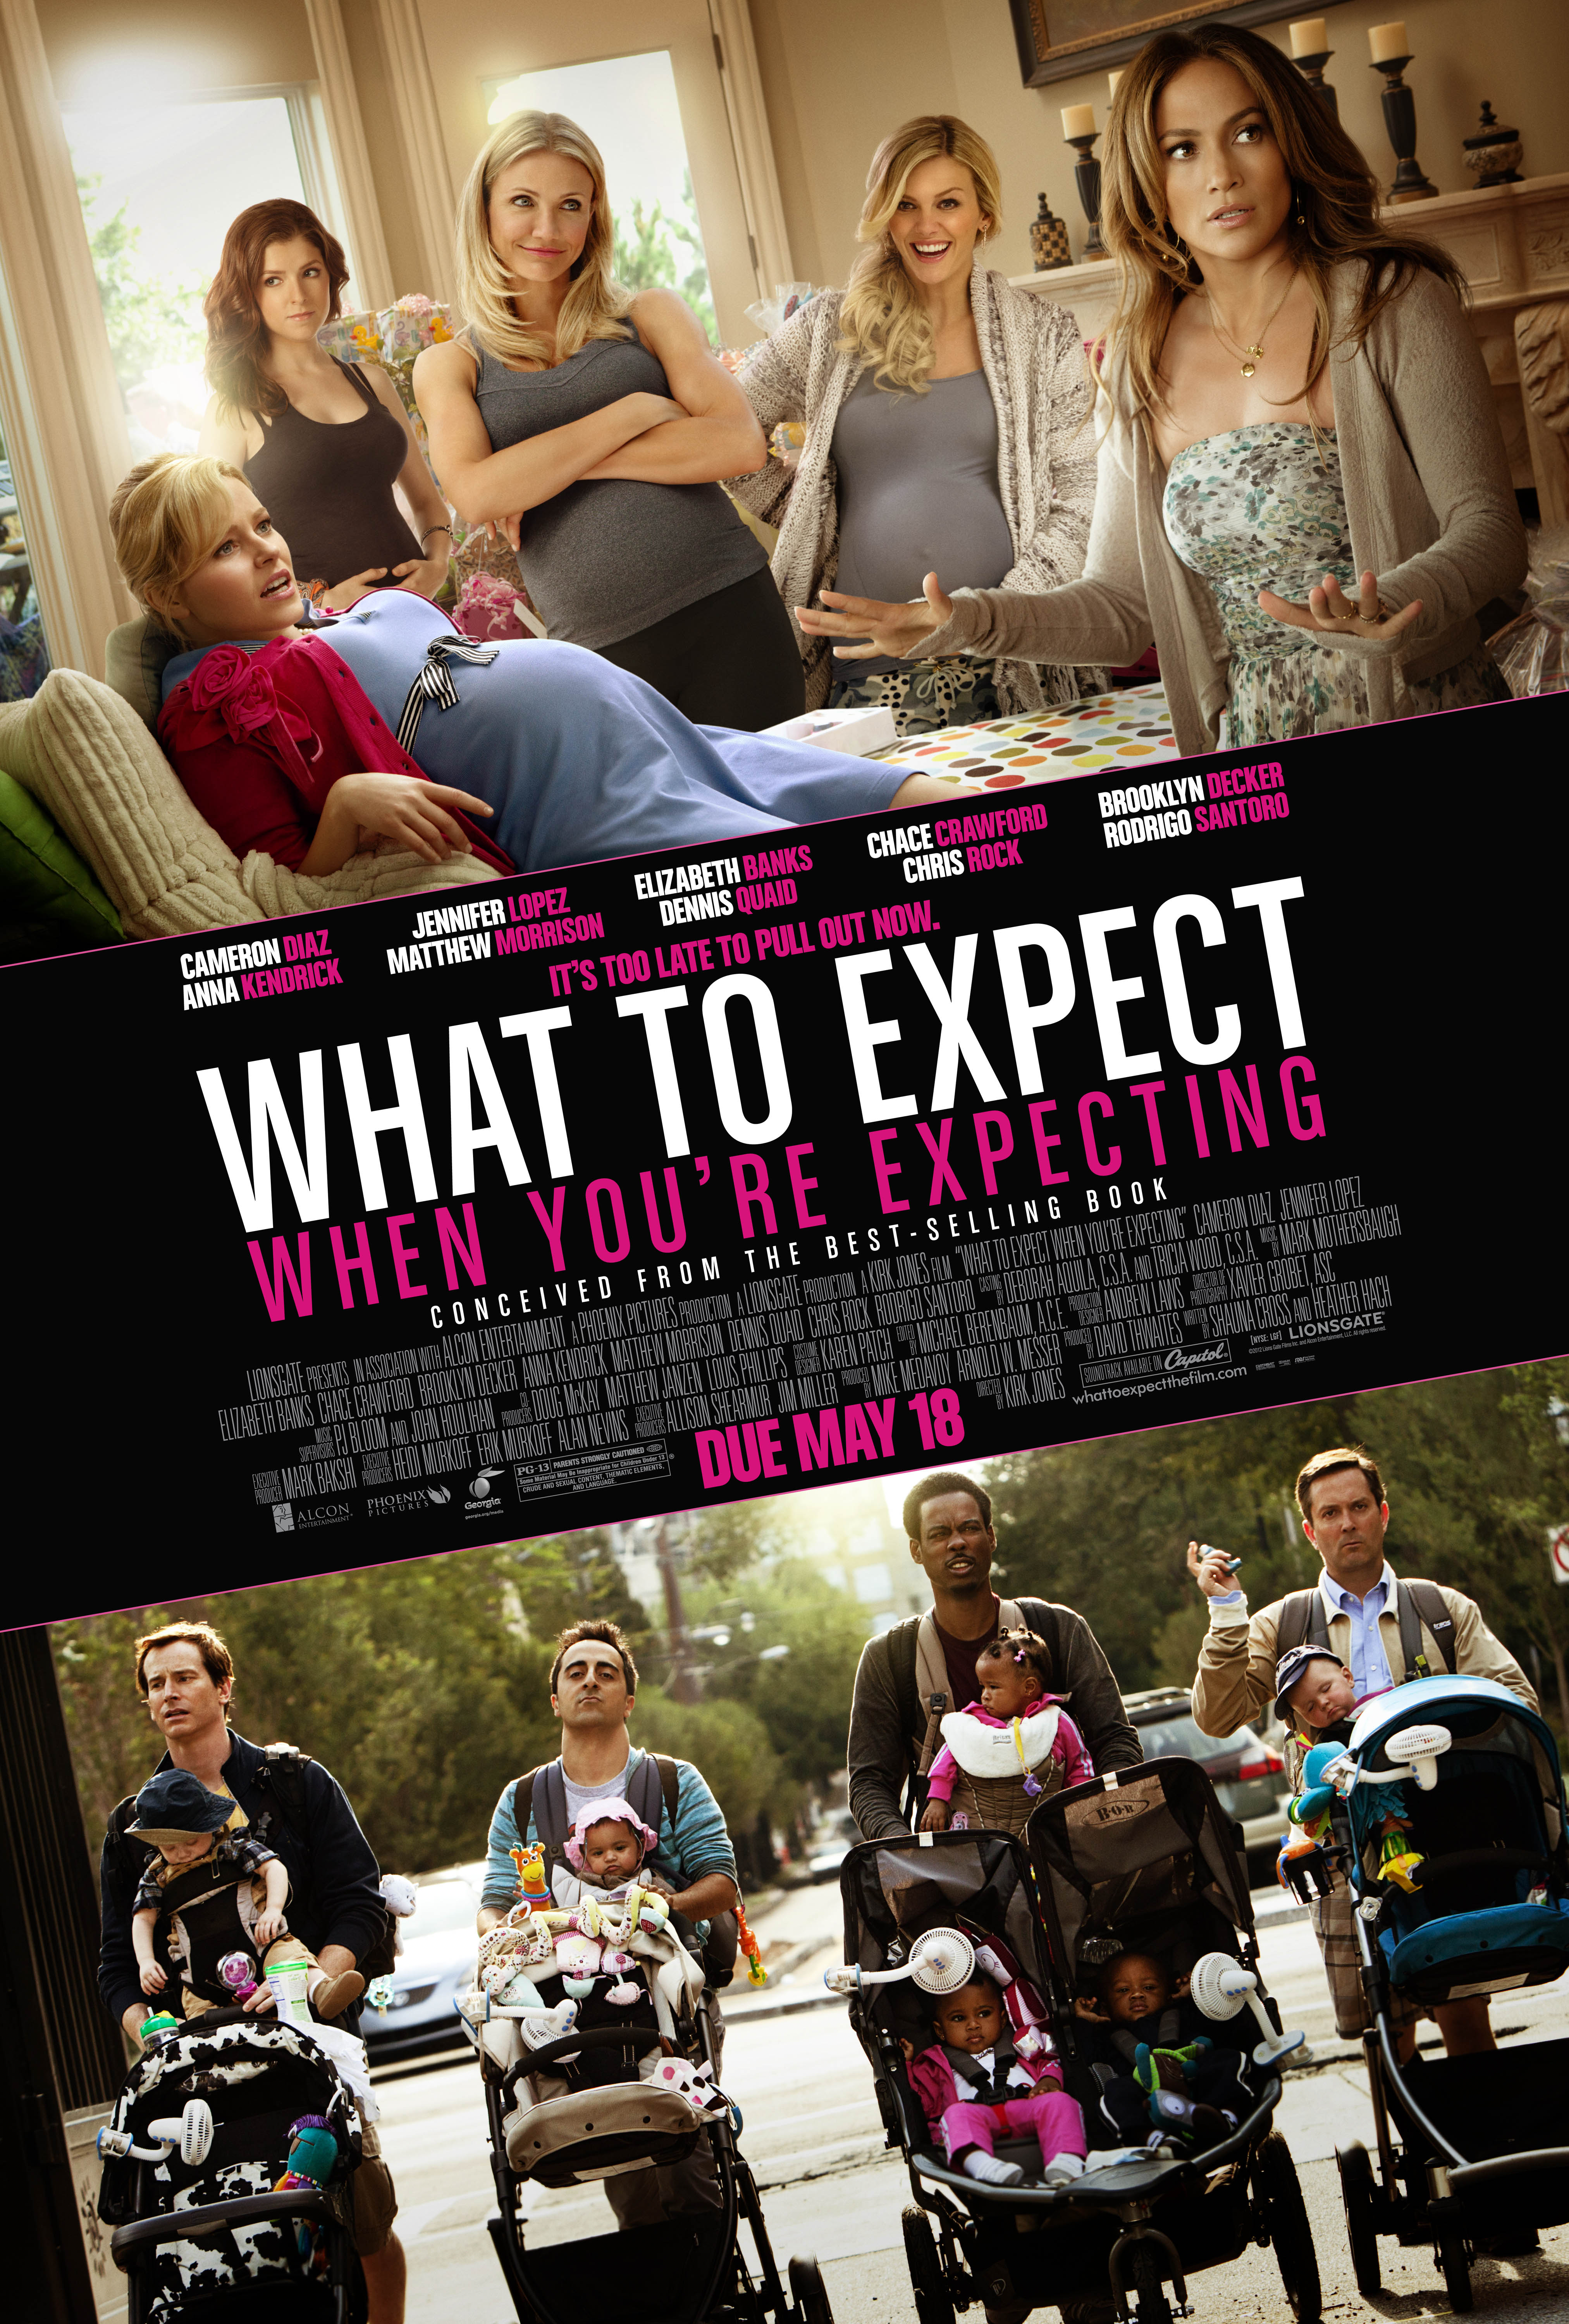 #WhatToExpectMovie many big names starring in this impending parenthood movie